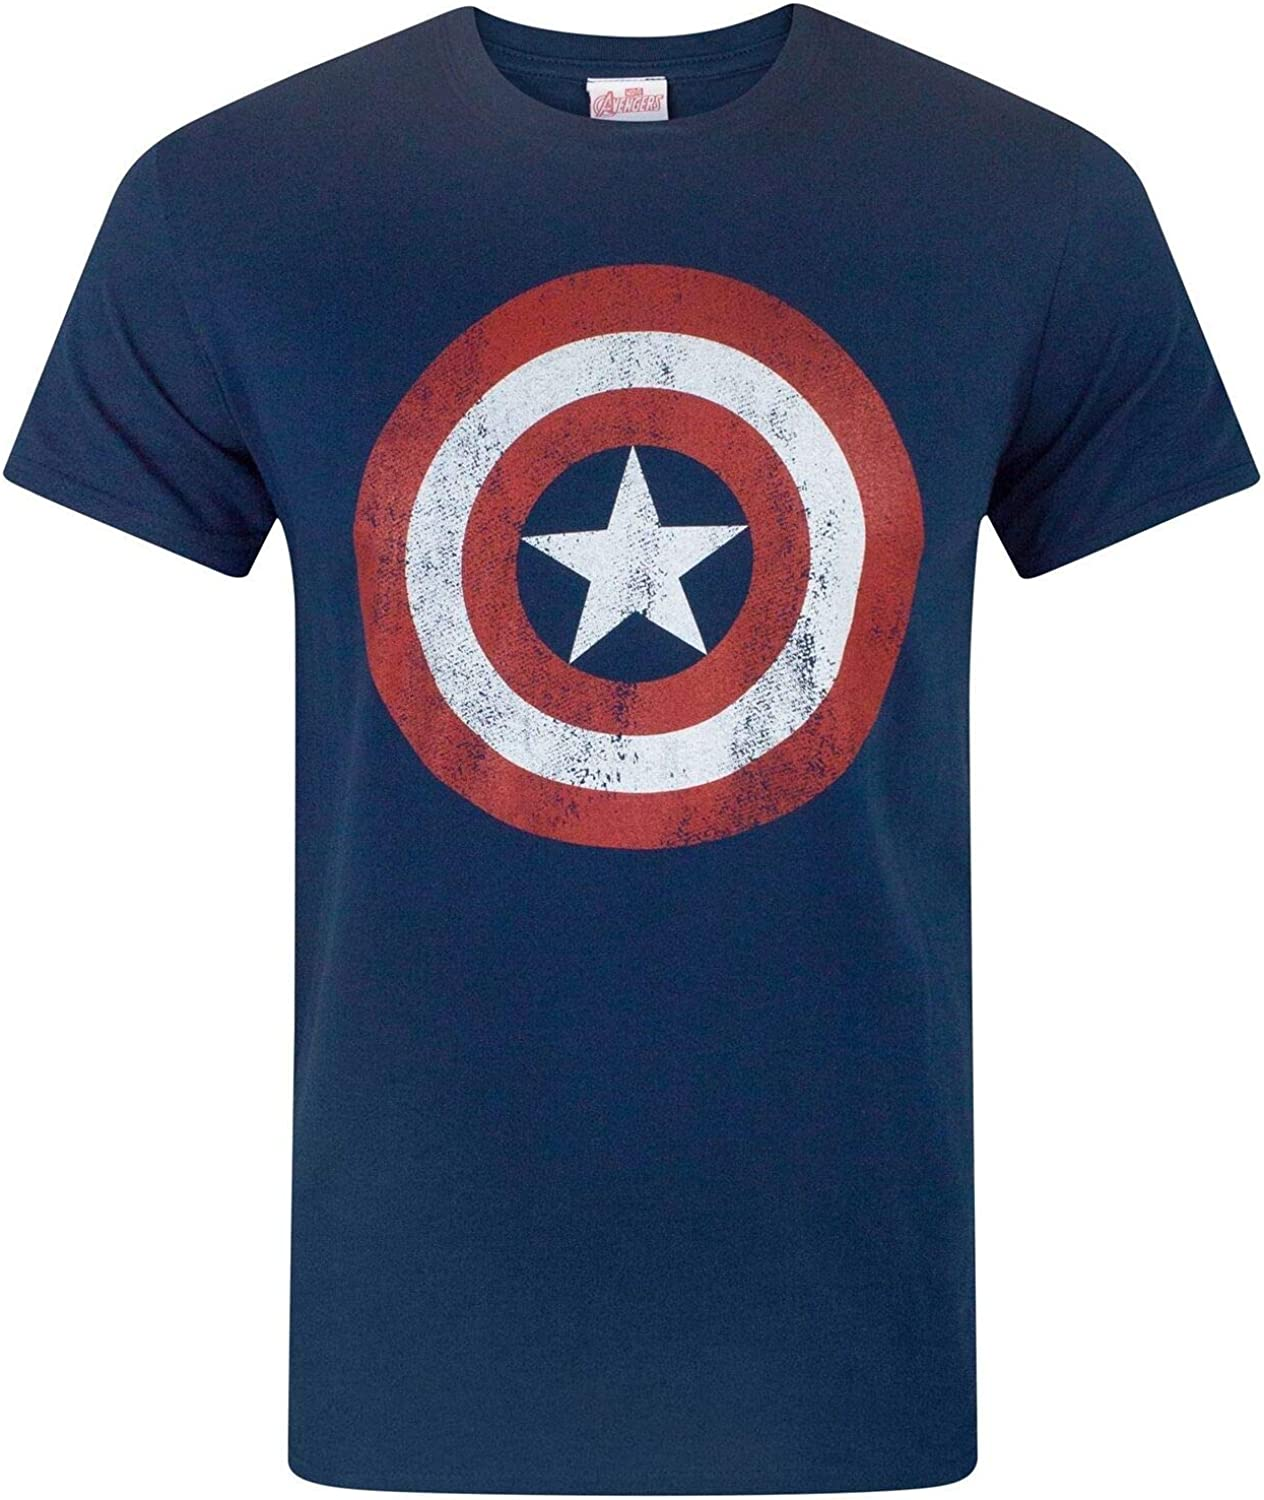 CAPTAIN AMERICA//STEVE ROGERS  T-shirt . available up to 5 X Large FREE UK POST